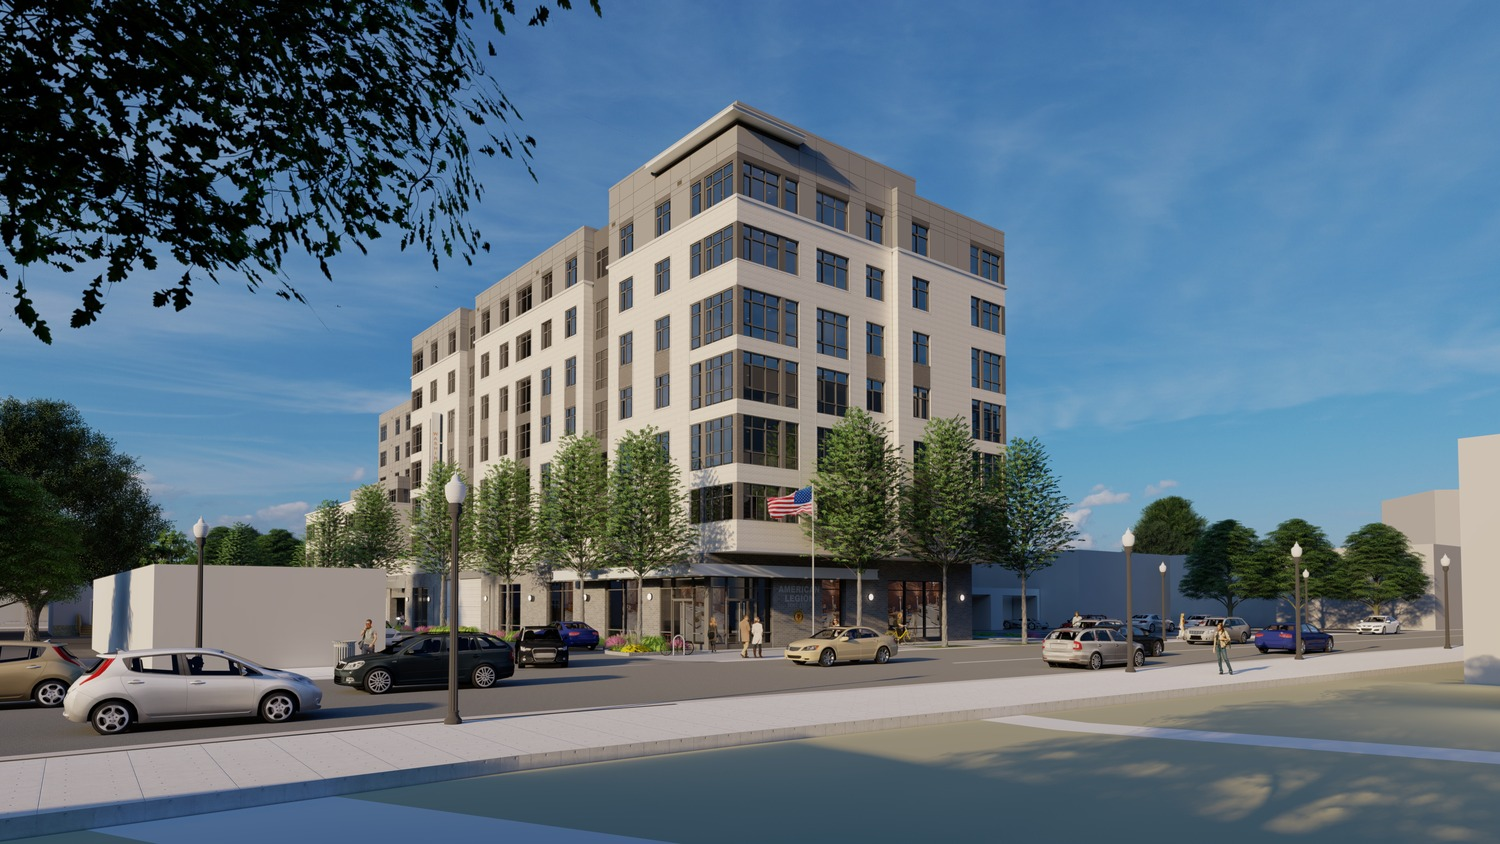 CBG builds Terwilliger Place, a Seven-Story, 160-Unit Affordable Community with Amenities and Retail in Arlington, VA - Image #2